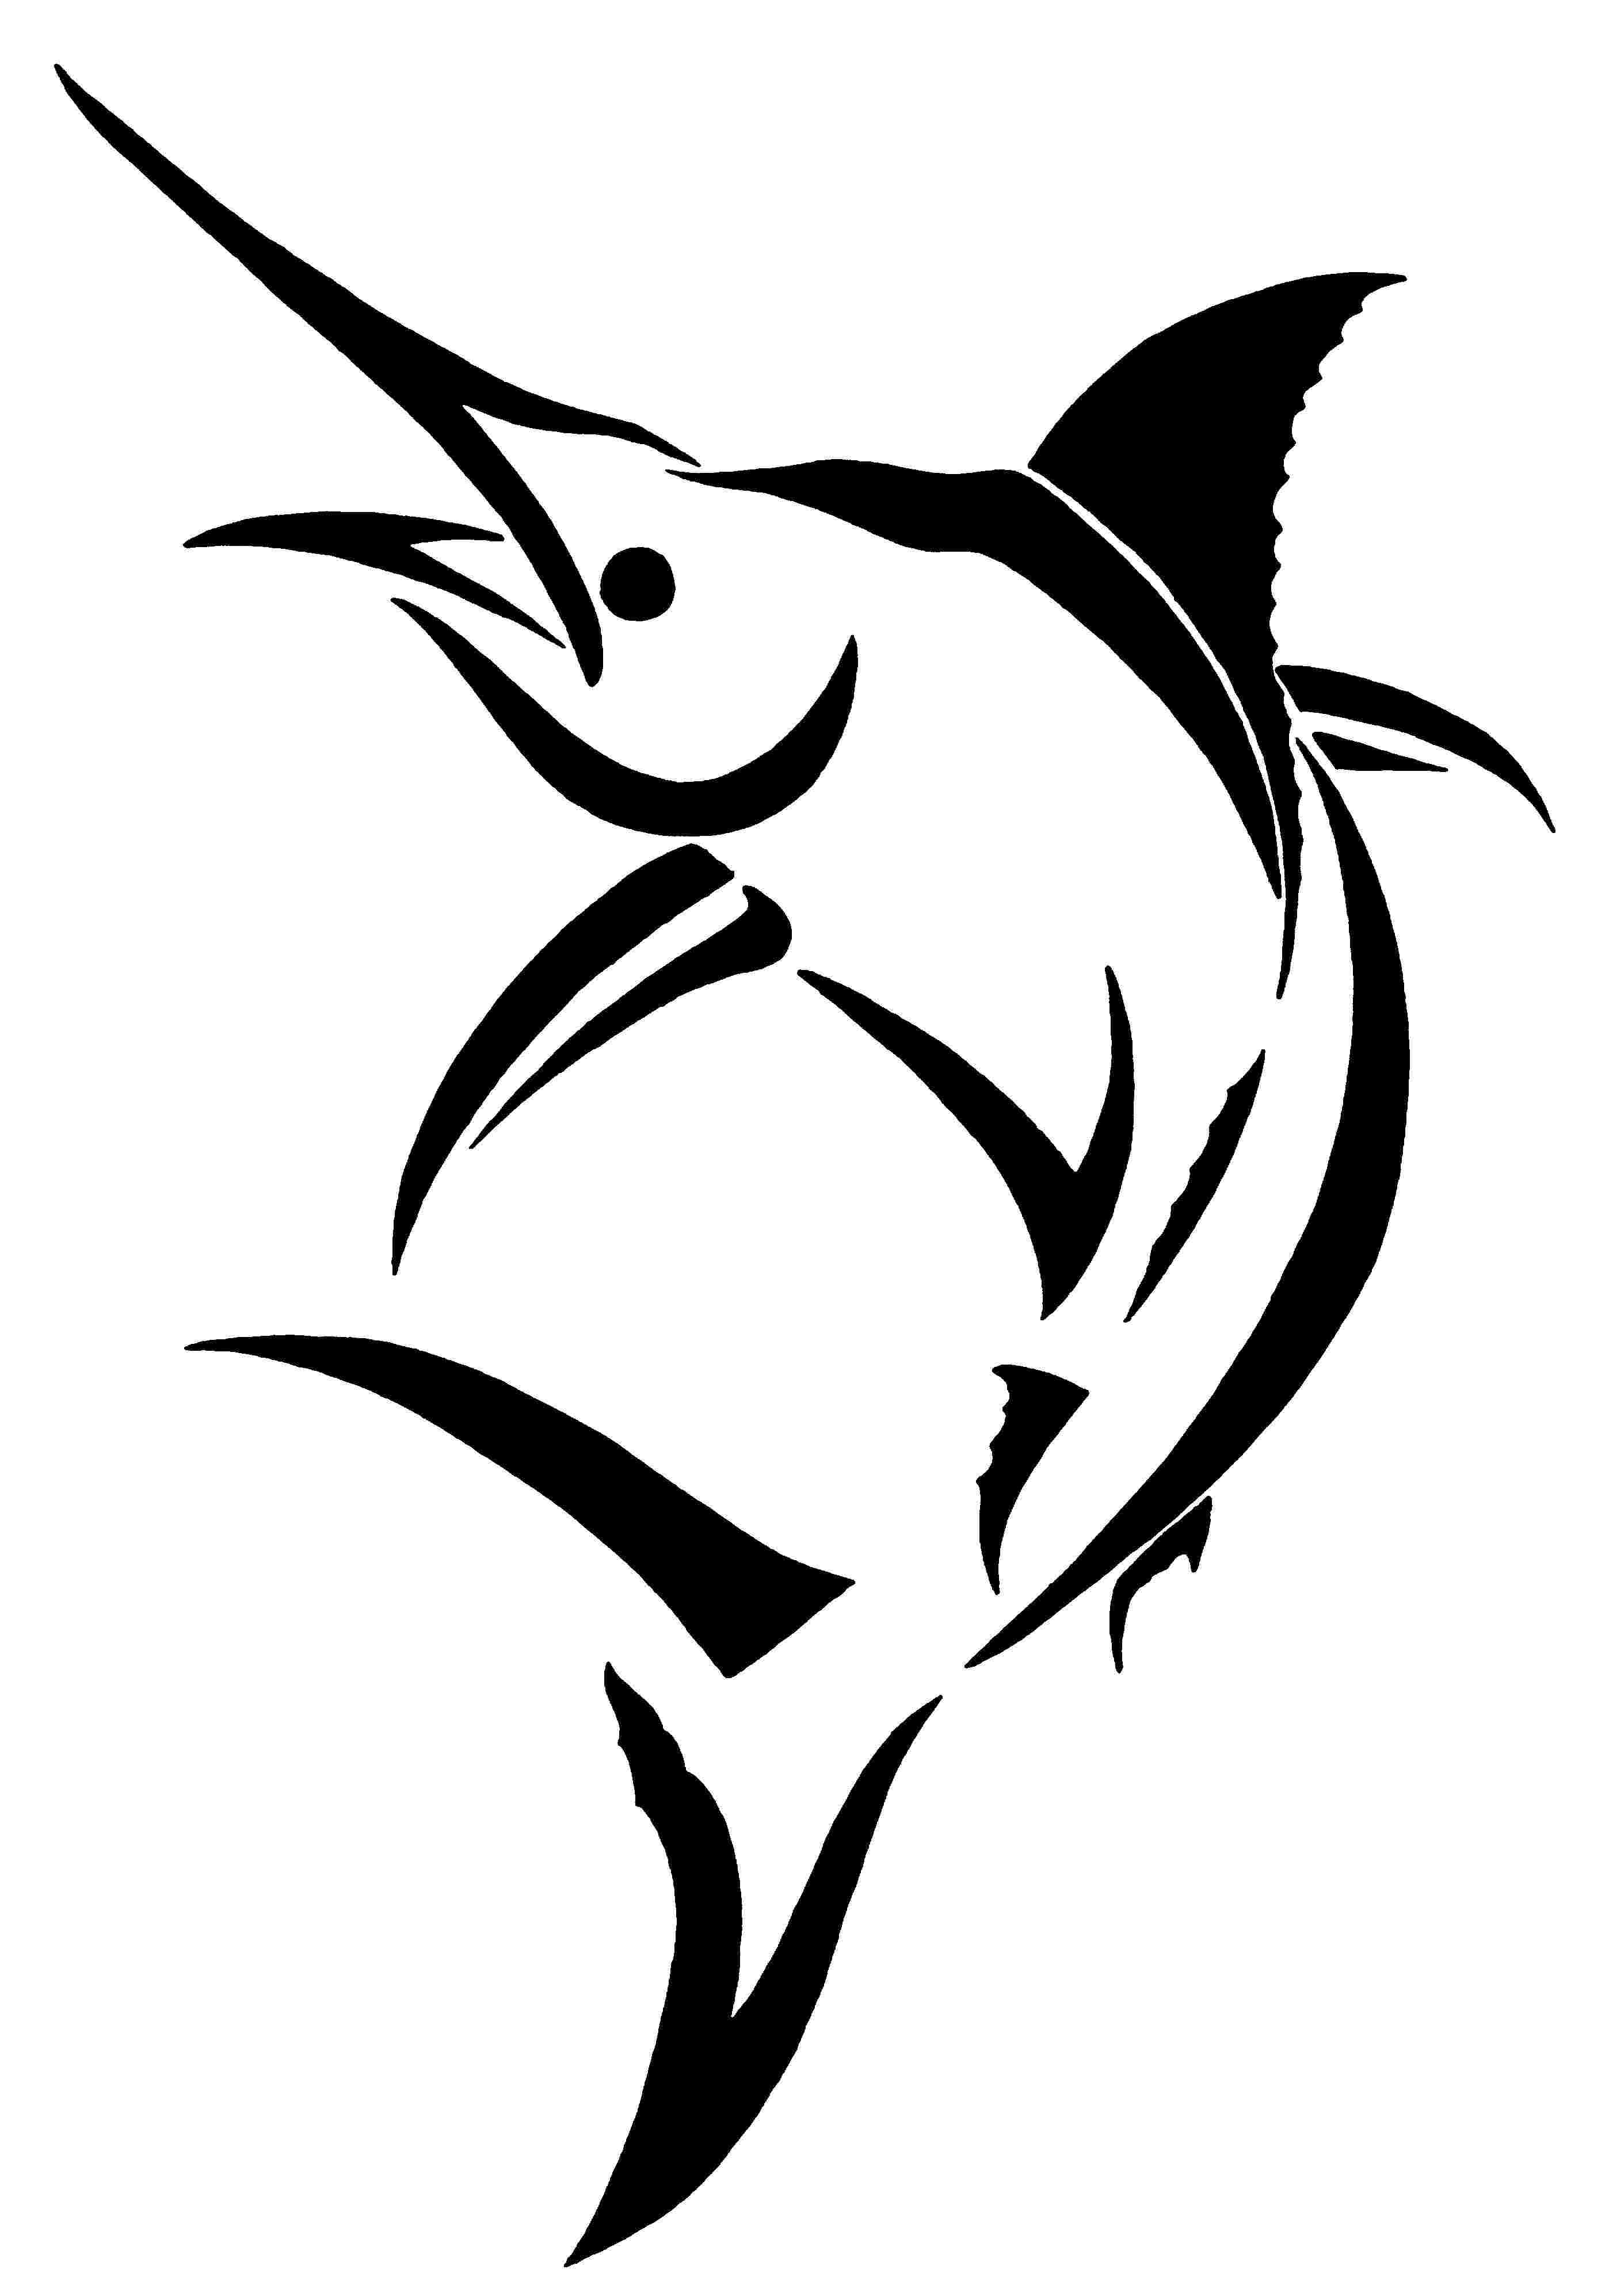 Marlin clipart download.